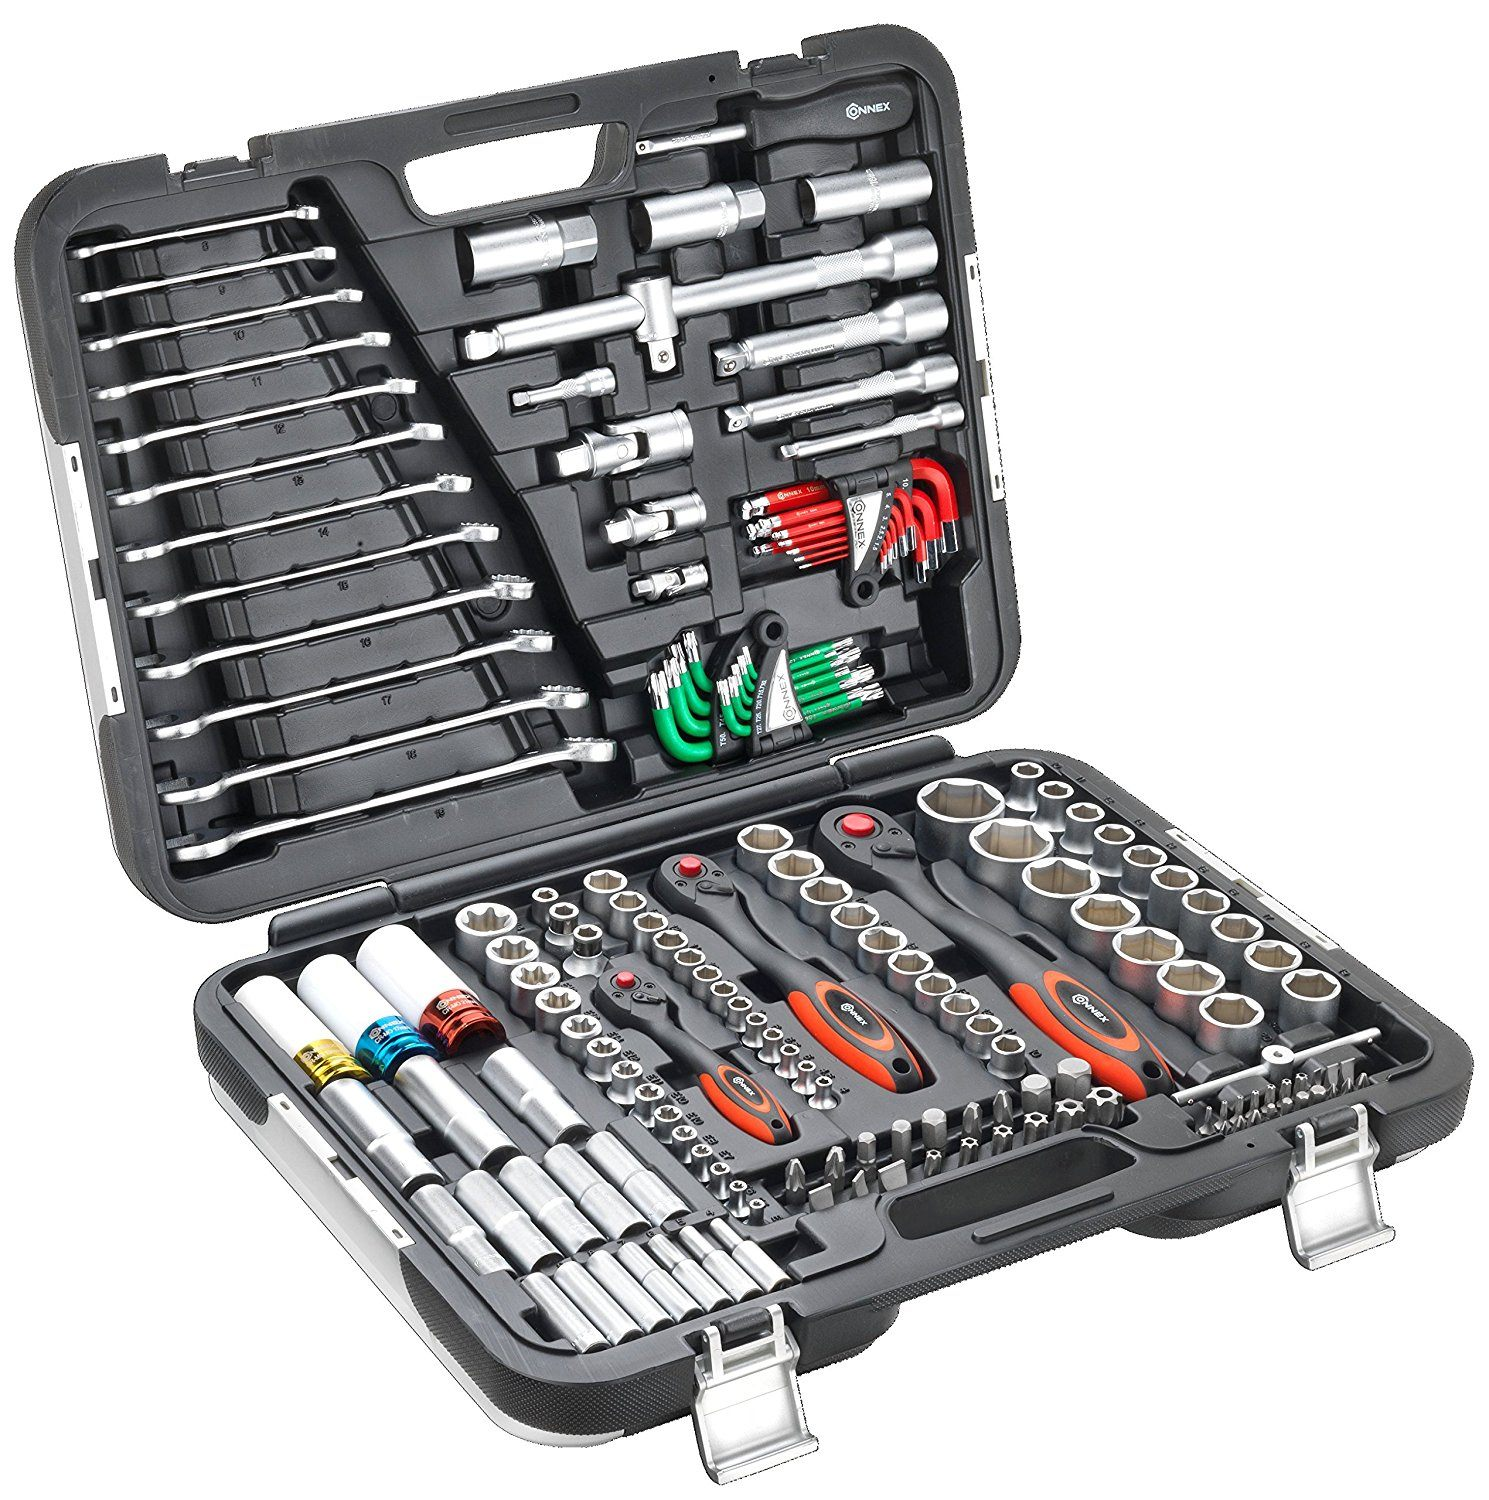 CONNEX COXBOH600160 Premium Tool Case Socket Set